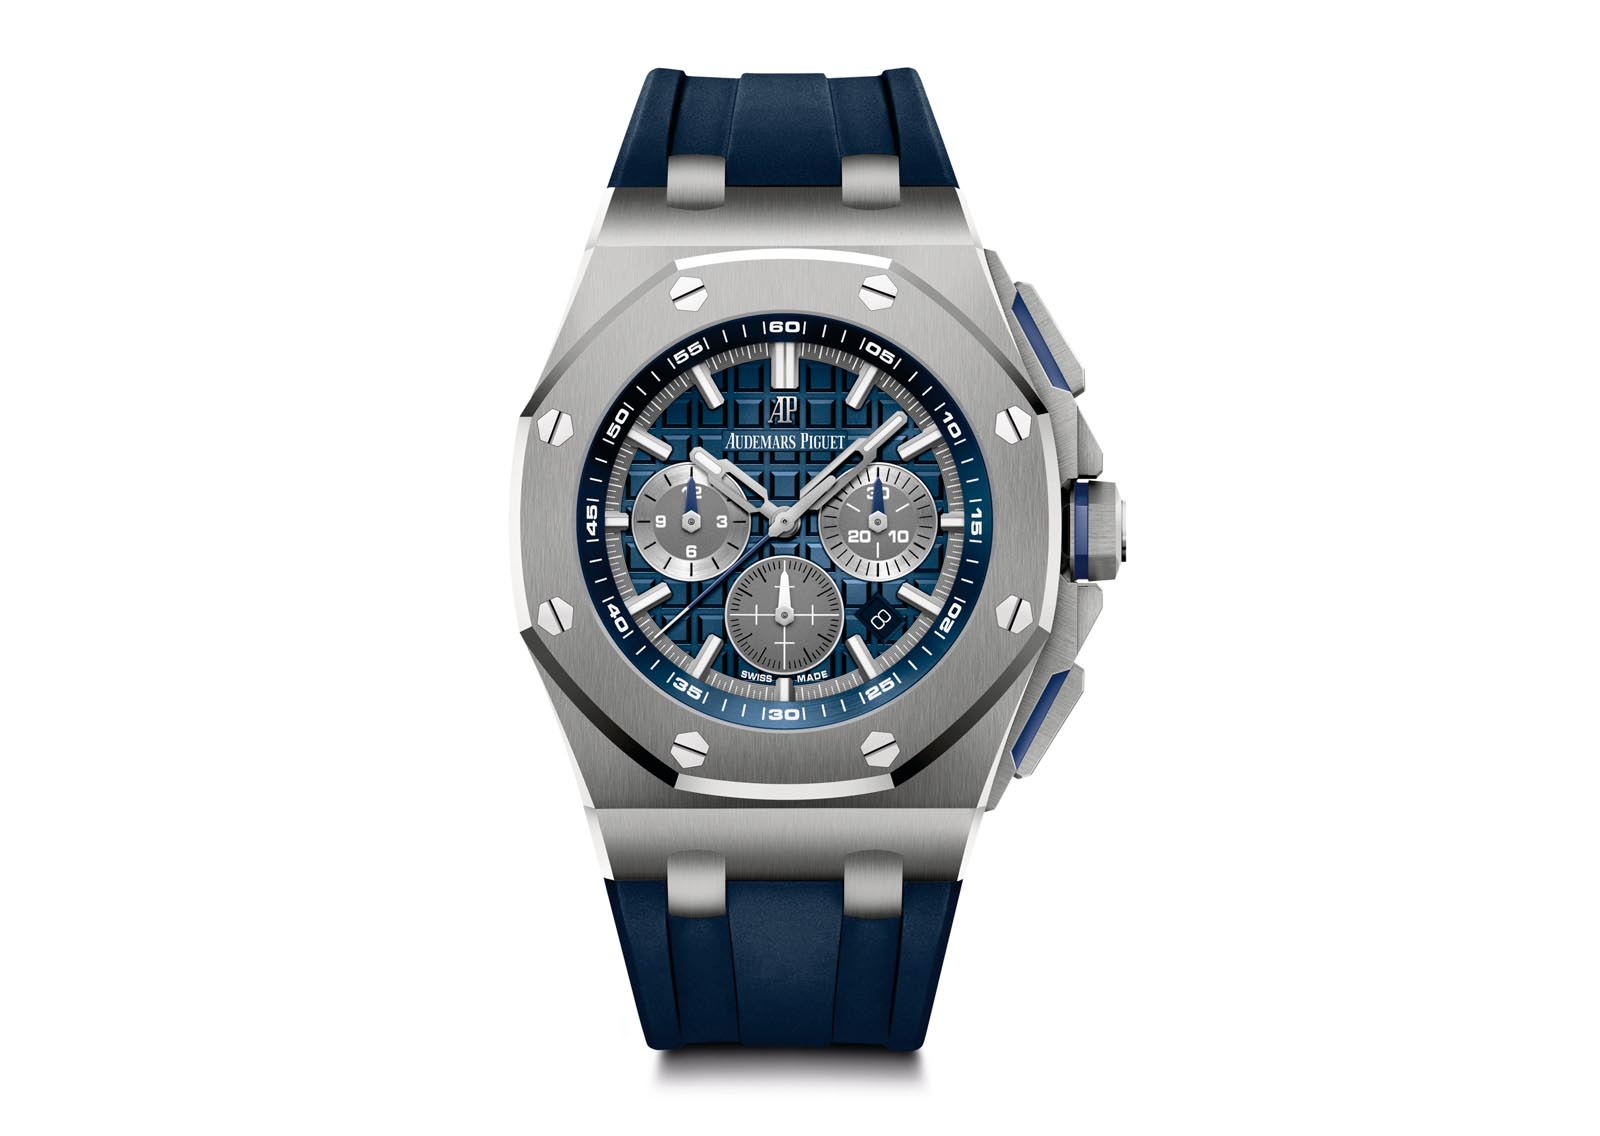 Audemars Piguet (Re)Introduces Royal Oak Offshore Chronograph 42mm, with an Upgraded Movement | SJX Watches